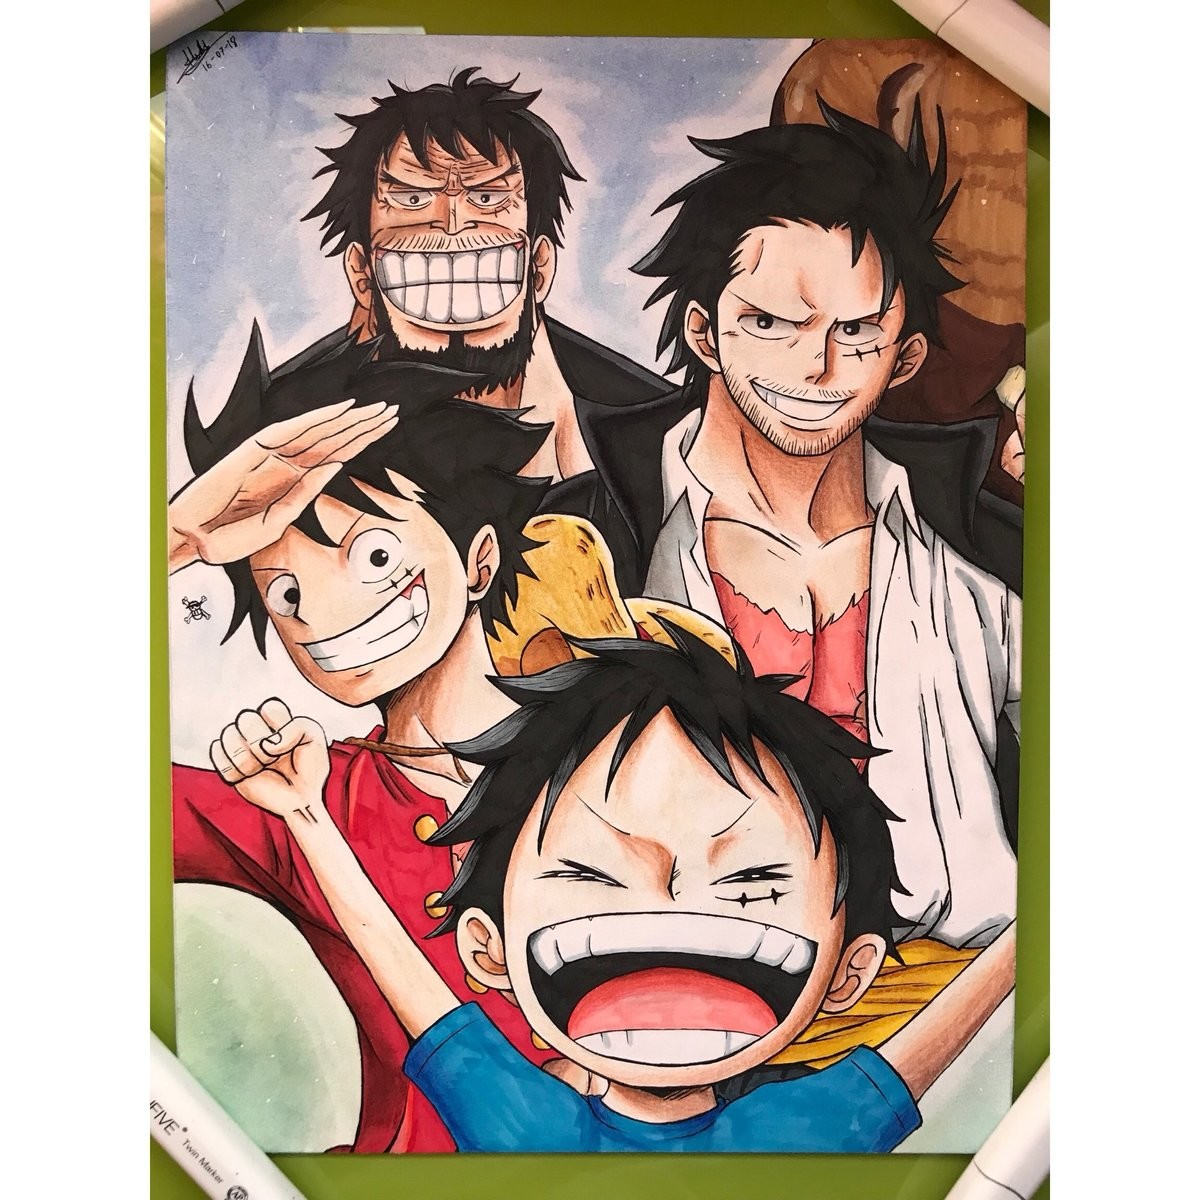 luffy. join list: onepiece (236 subs)Mention History.. The year is 2060. Eichiro Oda ha finally passed. Old Luffy is all that remains of what was once the anime industry. Gum-Gum-Dick EXTENSION BLUE is all over the